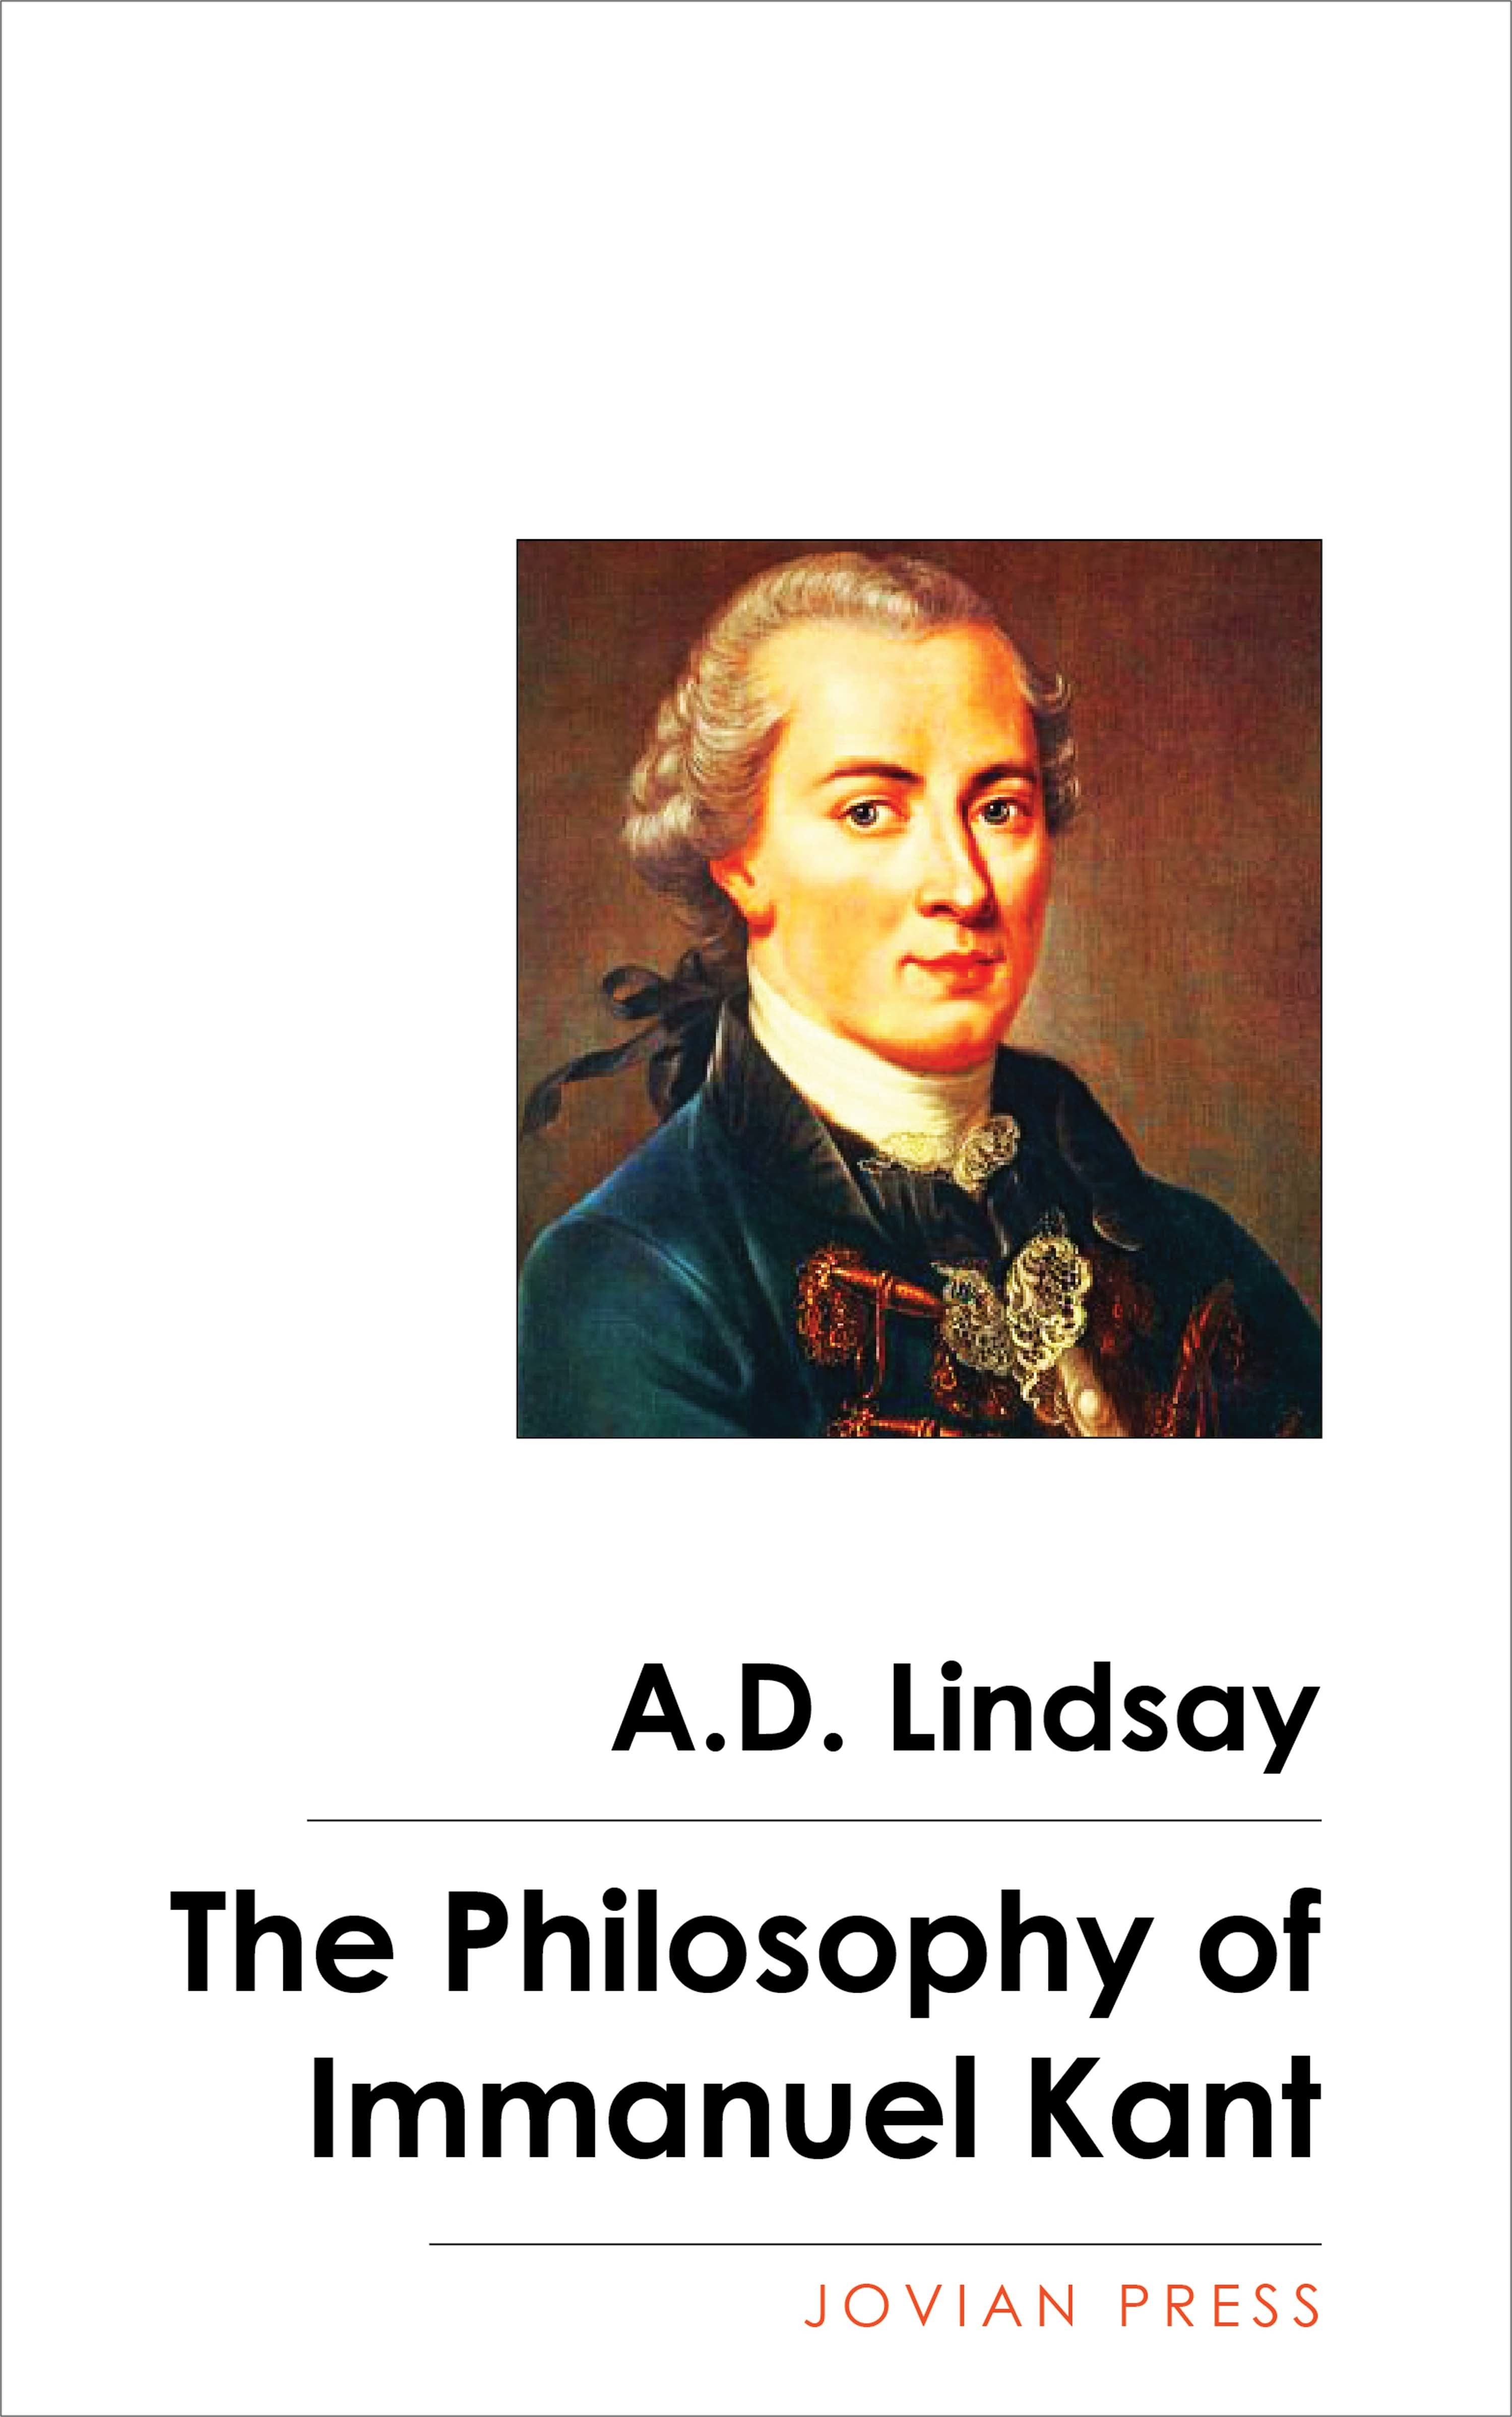 A. D. Lindsay The Philosophy of Immanuel Kant